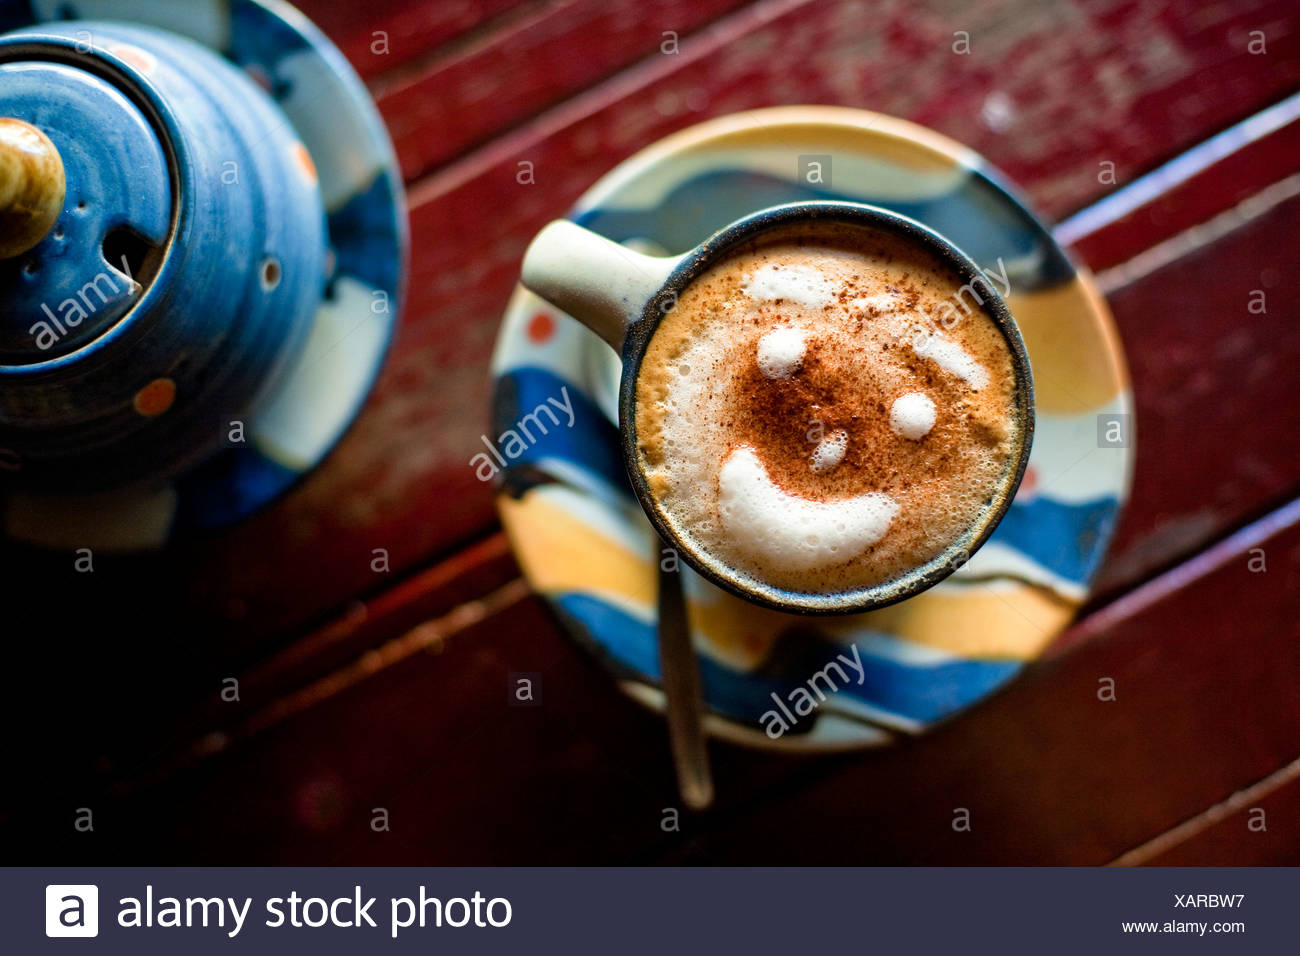 La photo en gros plan d'un espresso avec un visage souriant en mousse. Photo Stock